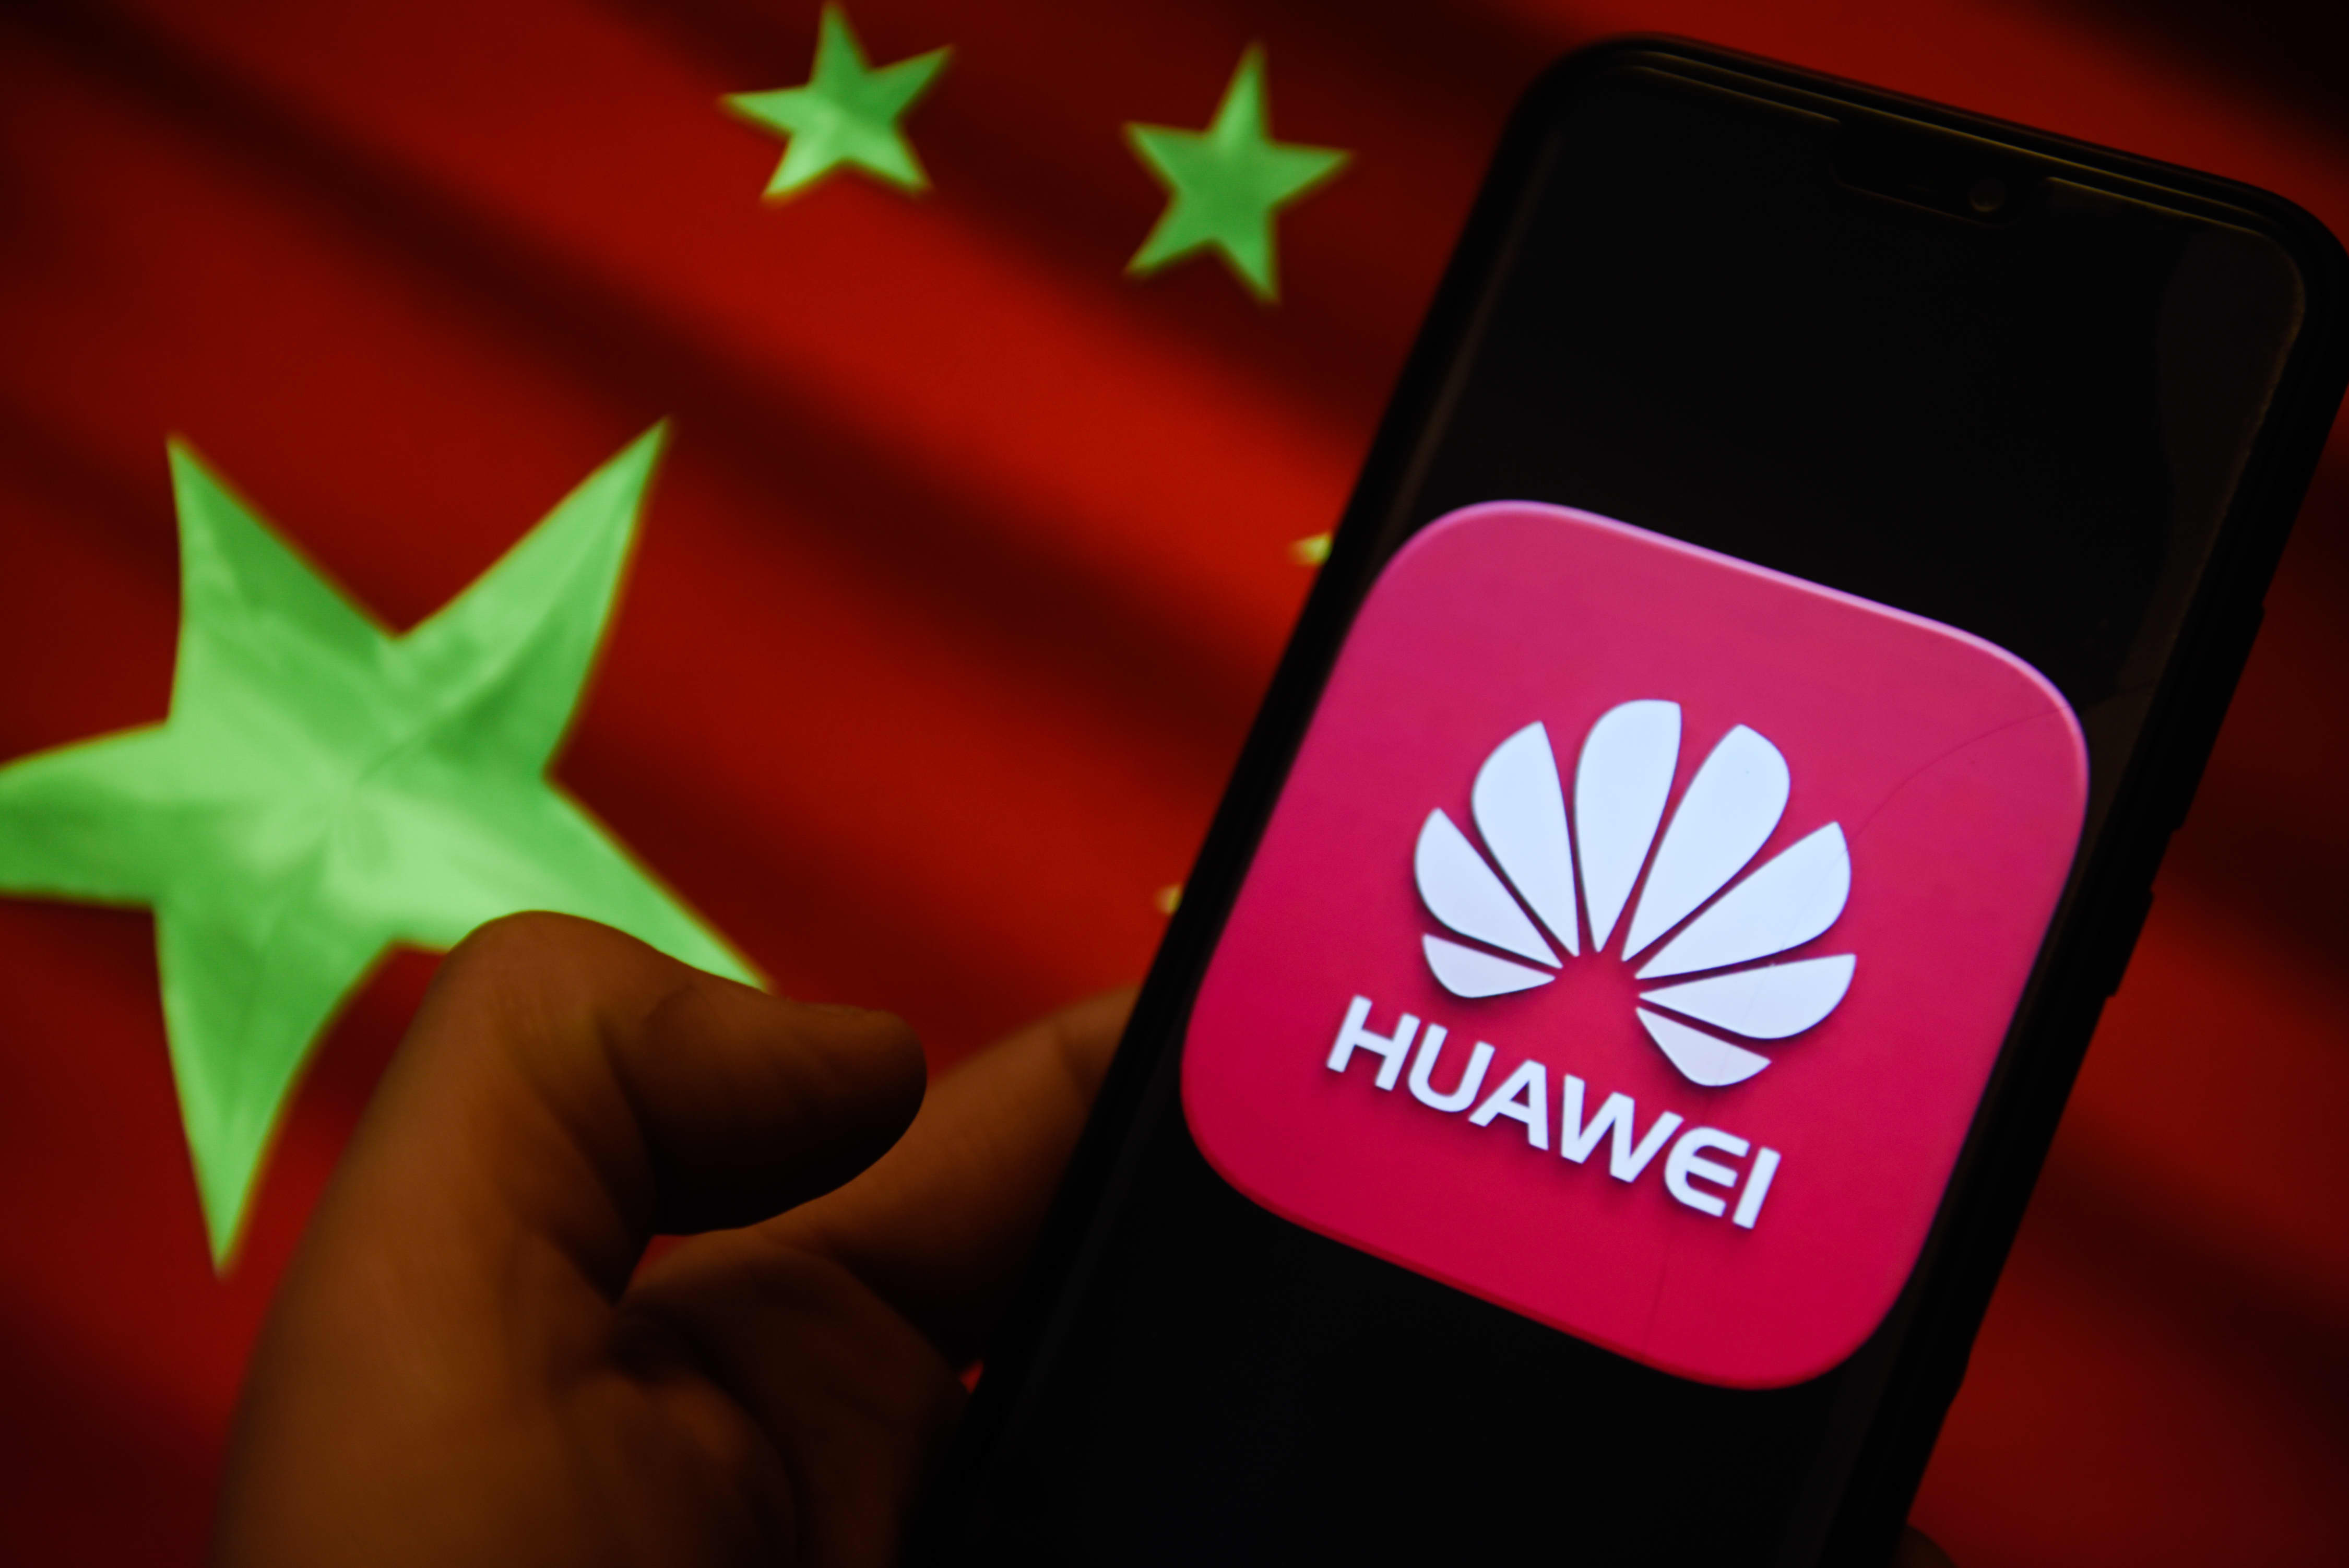 Huawei's biggest problem is now uncertainty, analysts say